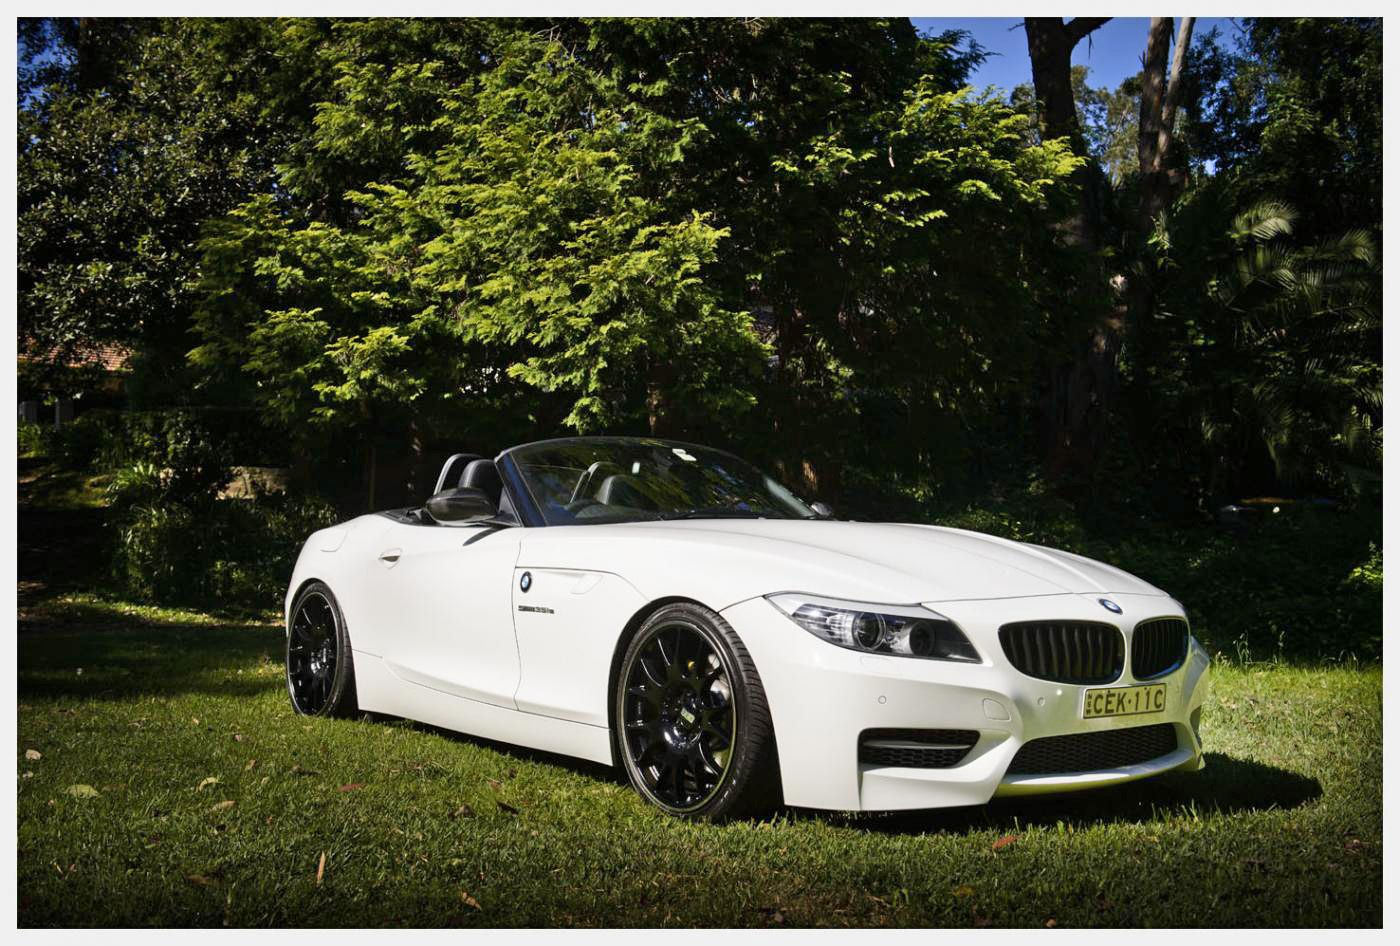 bmw z4 e89 bmw 4ever pinterest bmw z4 bmw and. Black Bedroom Furniture Sets. Home Design Ideas